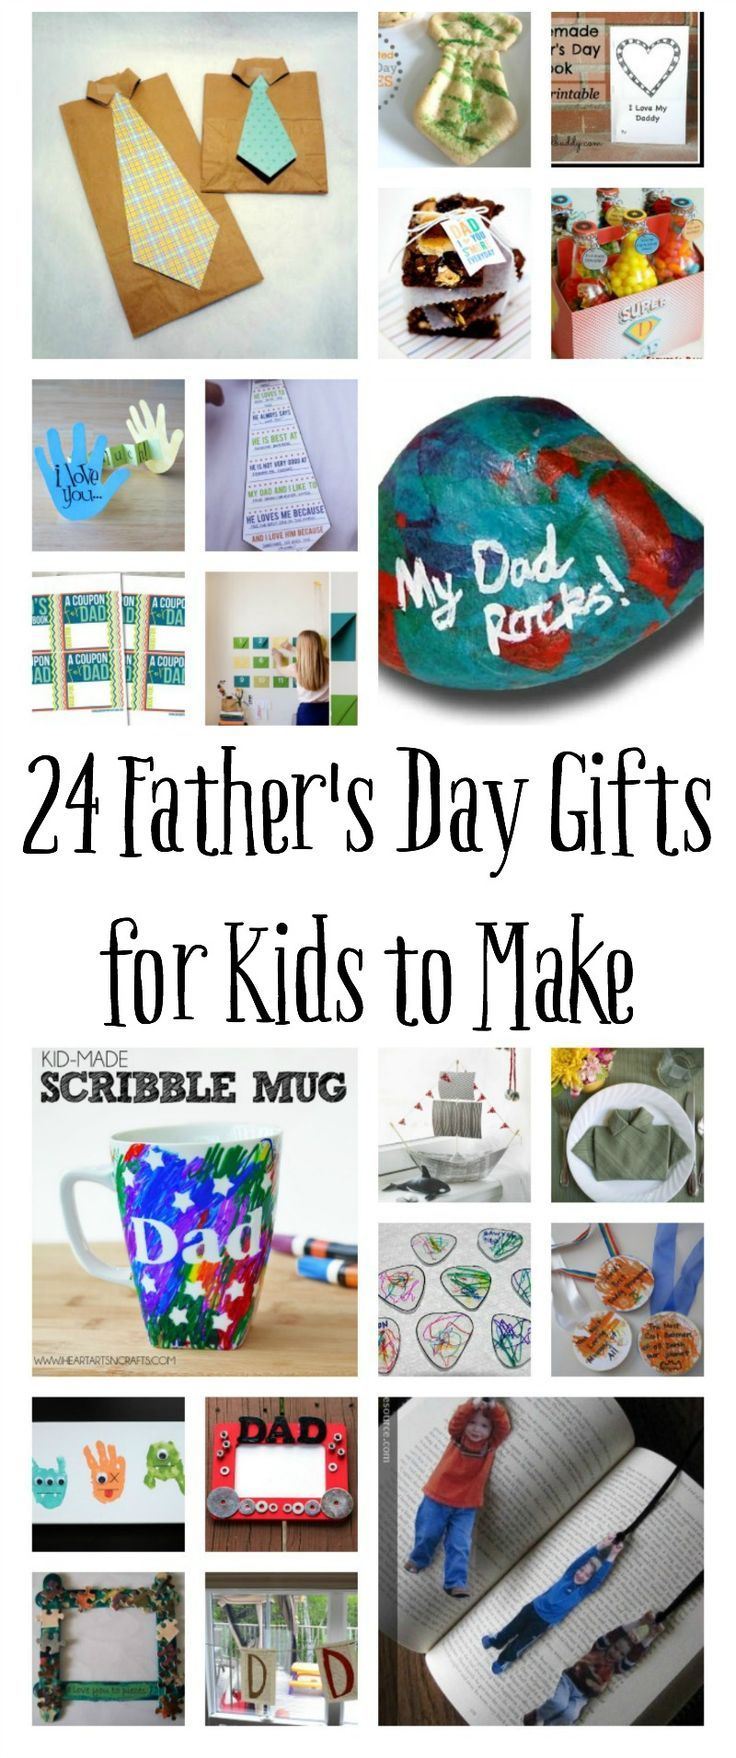 100 Homemade Father's Day Gifts for Kids to Make Fathers